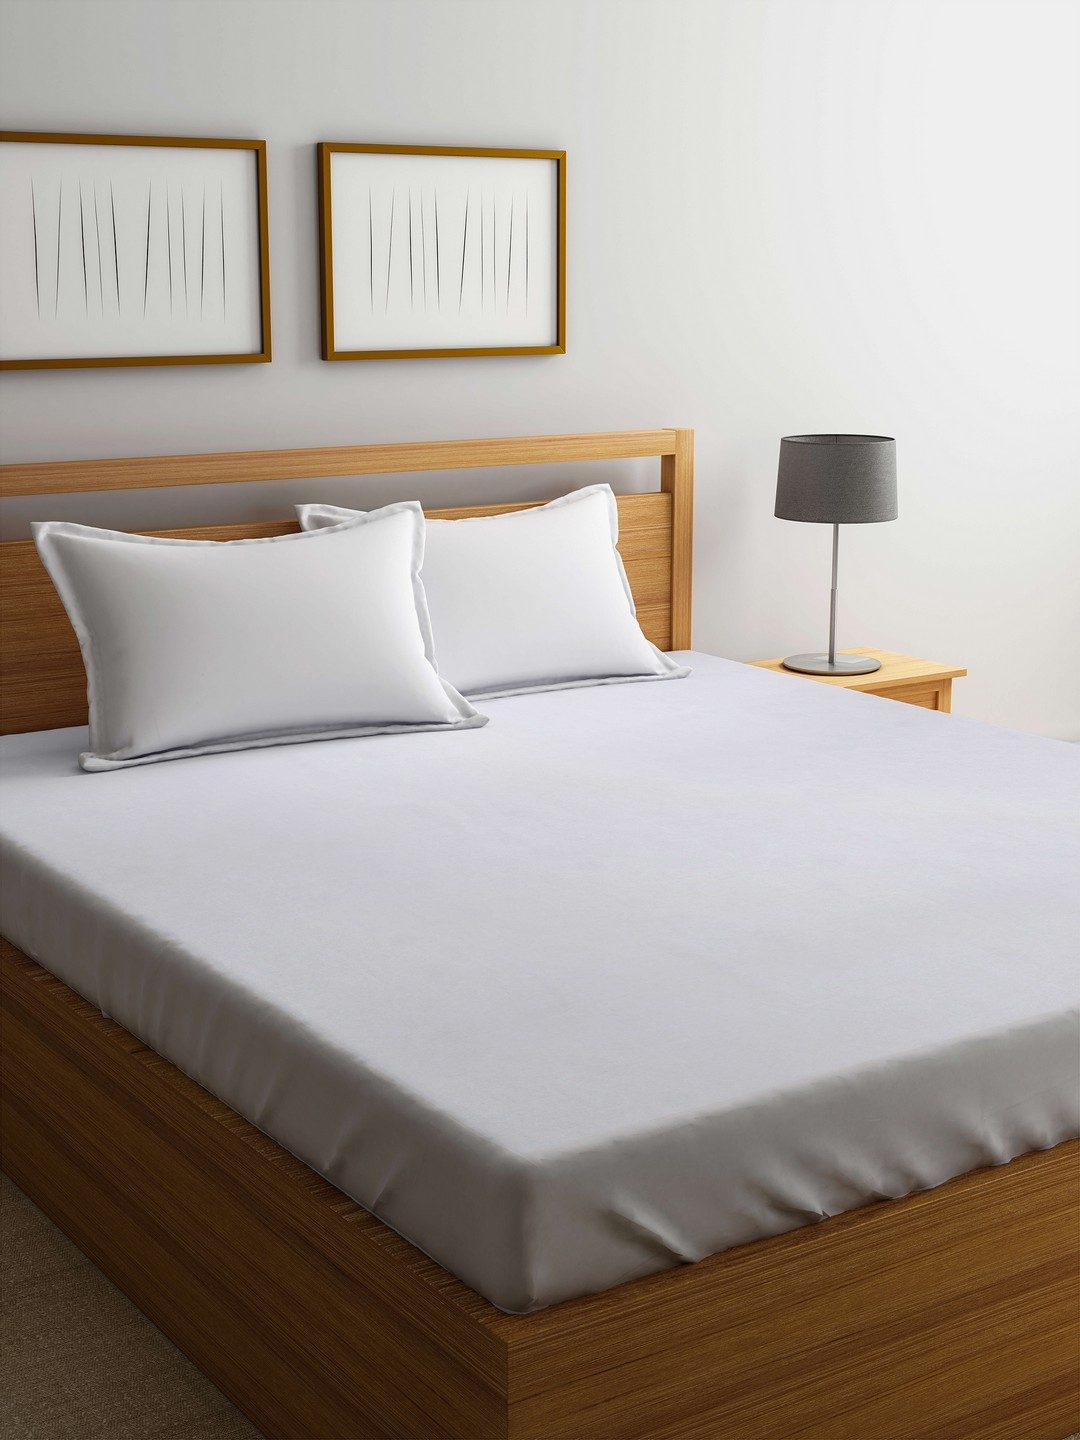 Buy Cortina White Double Bed Waterproof Mattress Protector